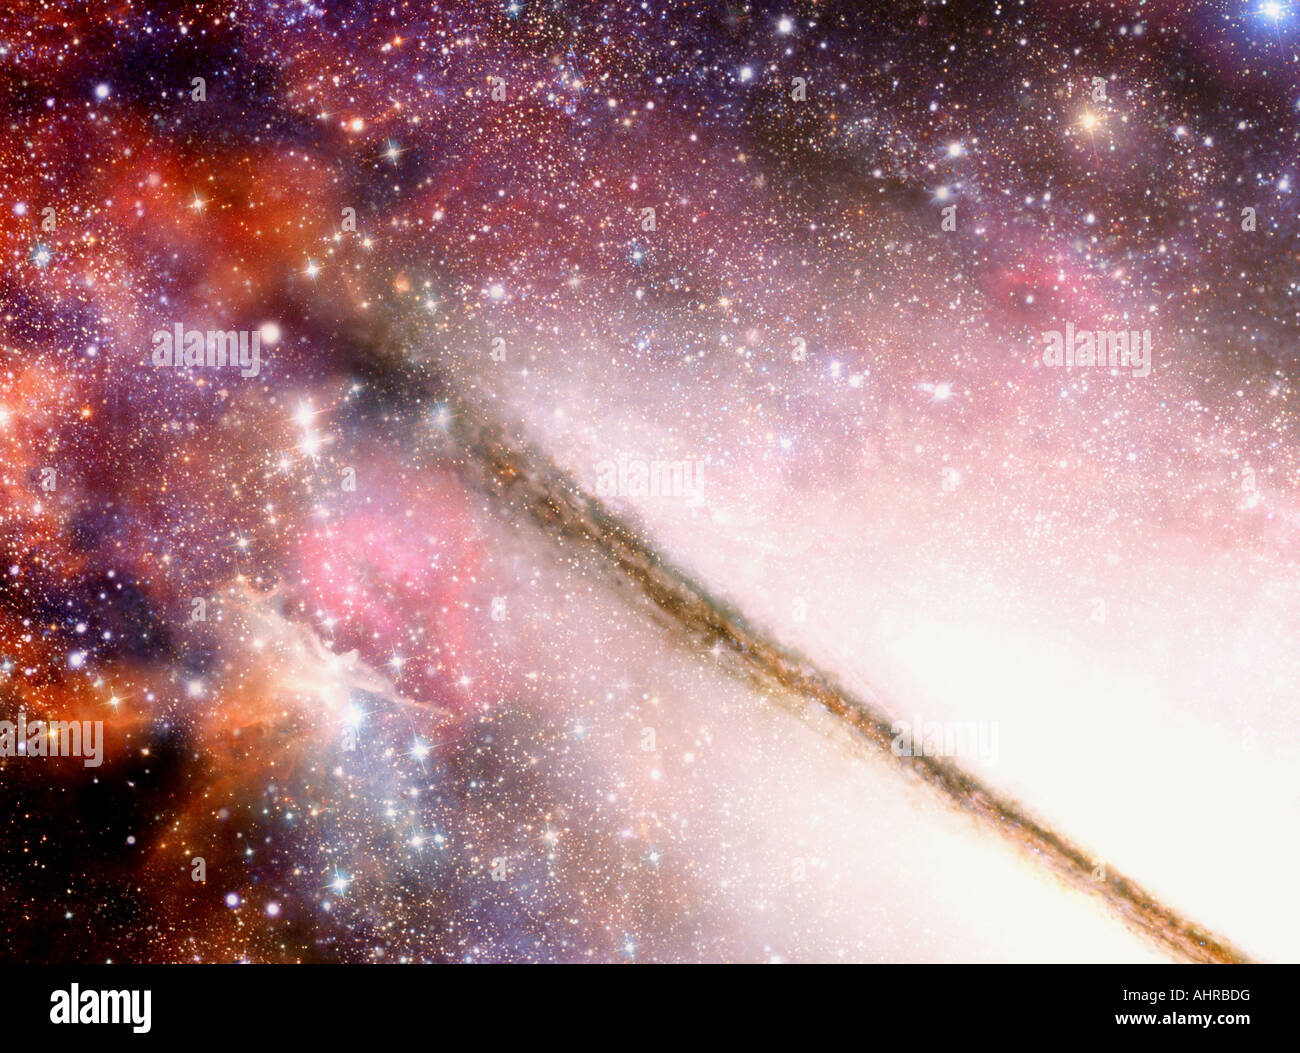 Very fascinating illustration of a spectacular vision inside spiral galaxy - Stock Image